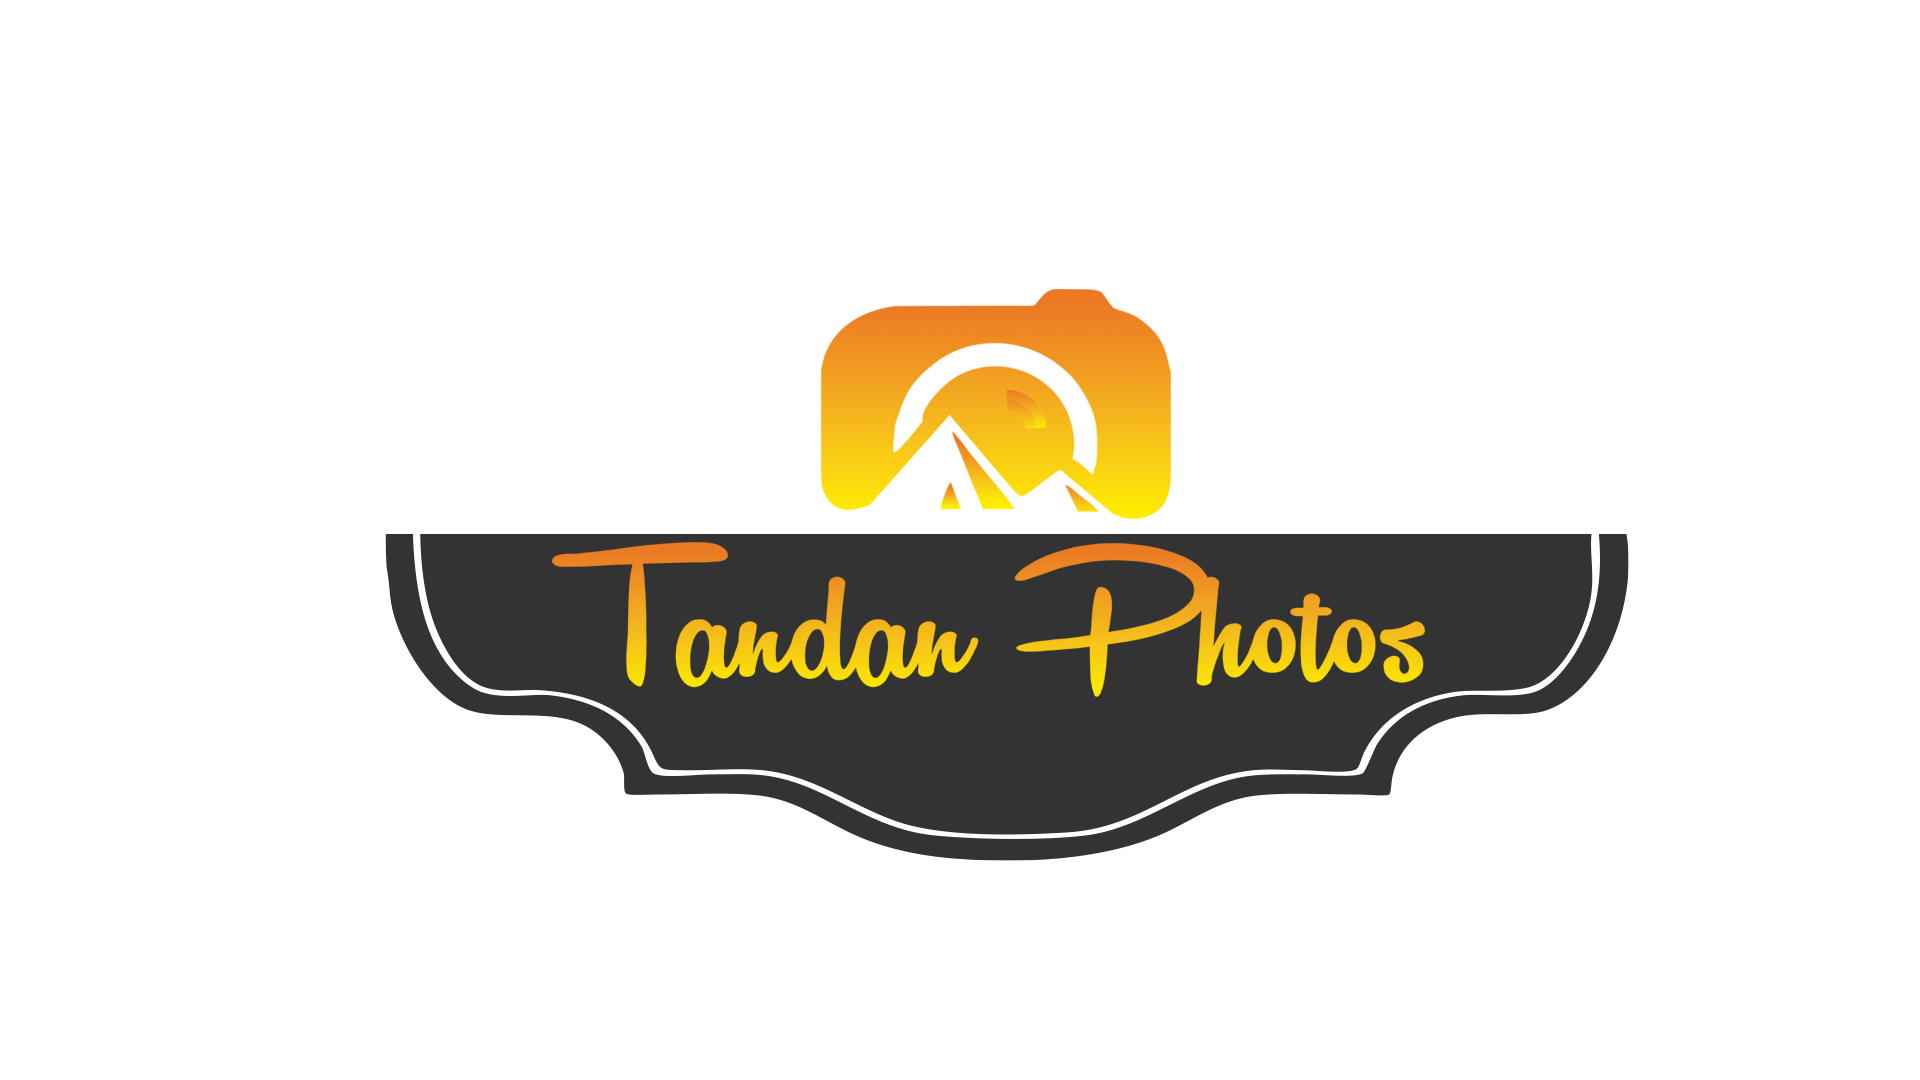 Tandan Photos